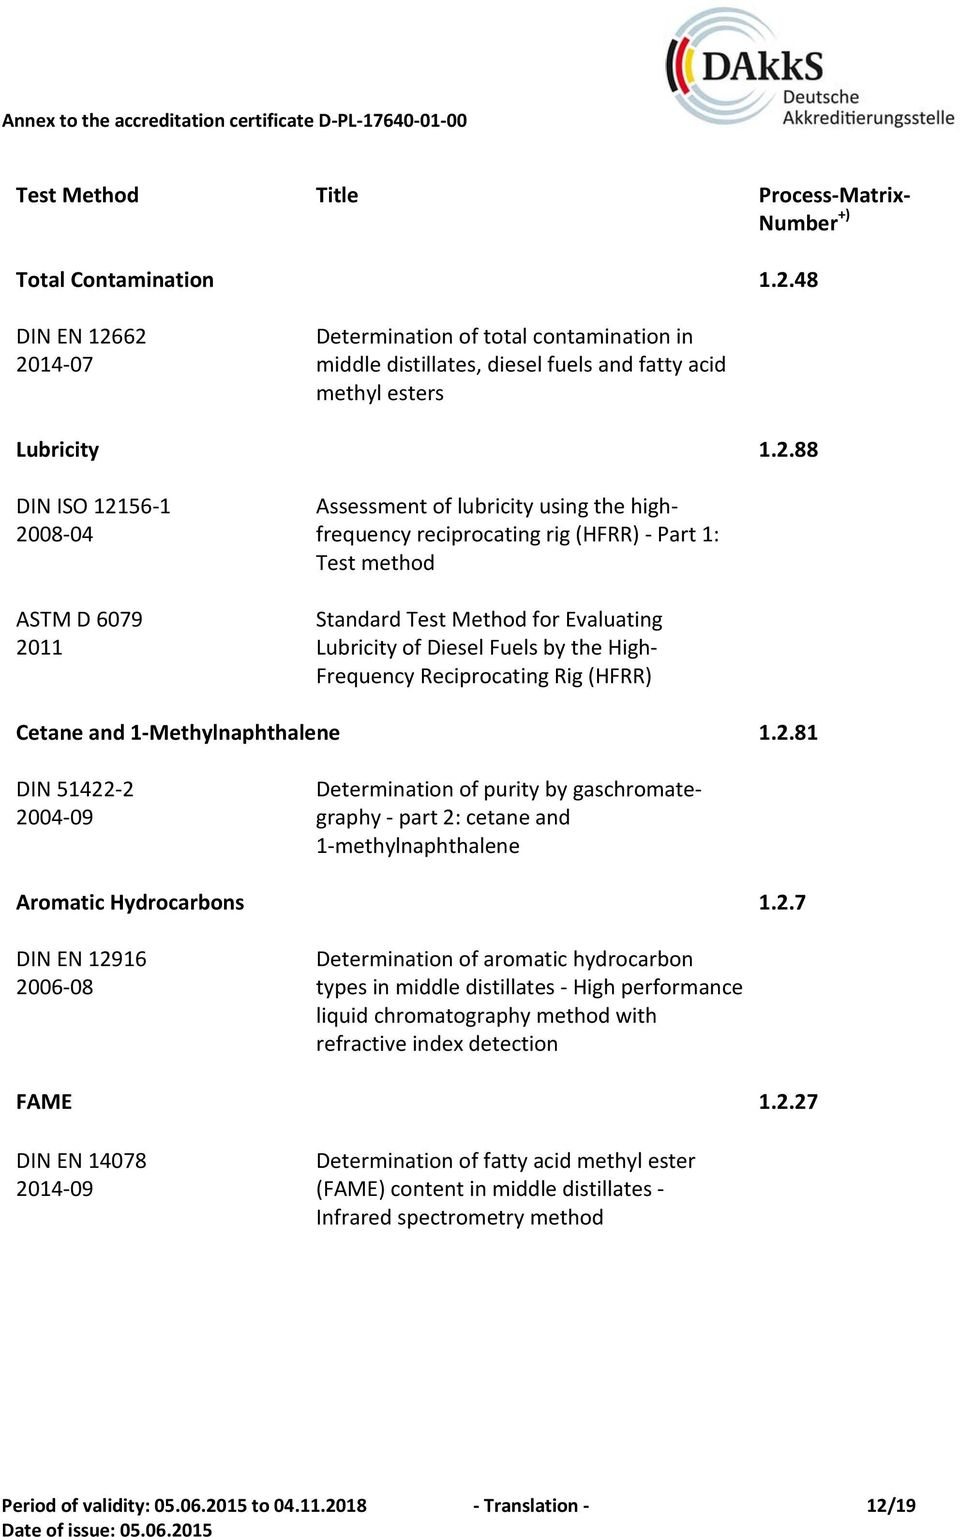 62 2014 07 Determination of total contamination in middle distillates, diesel fuels and fatty acid methyl esters Lubricity 1.2.88 DIN ISO 12156 1 2008 04 ASTM D 6079 2011 Assessment of lubricity